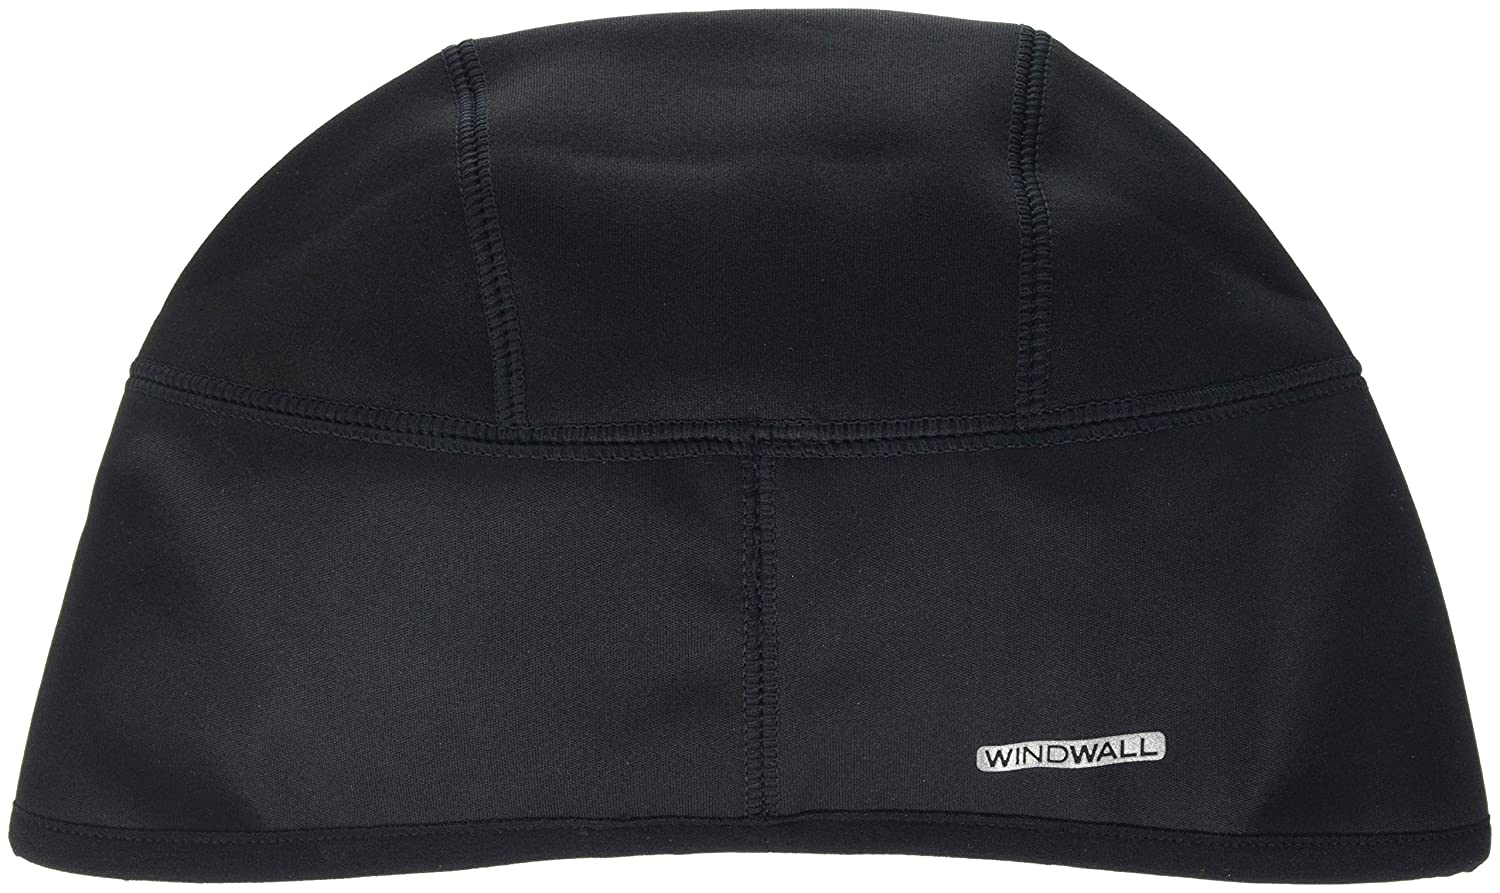 1a82acd58 THE NORTH FACE Men's Wind Wall Beanie